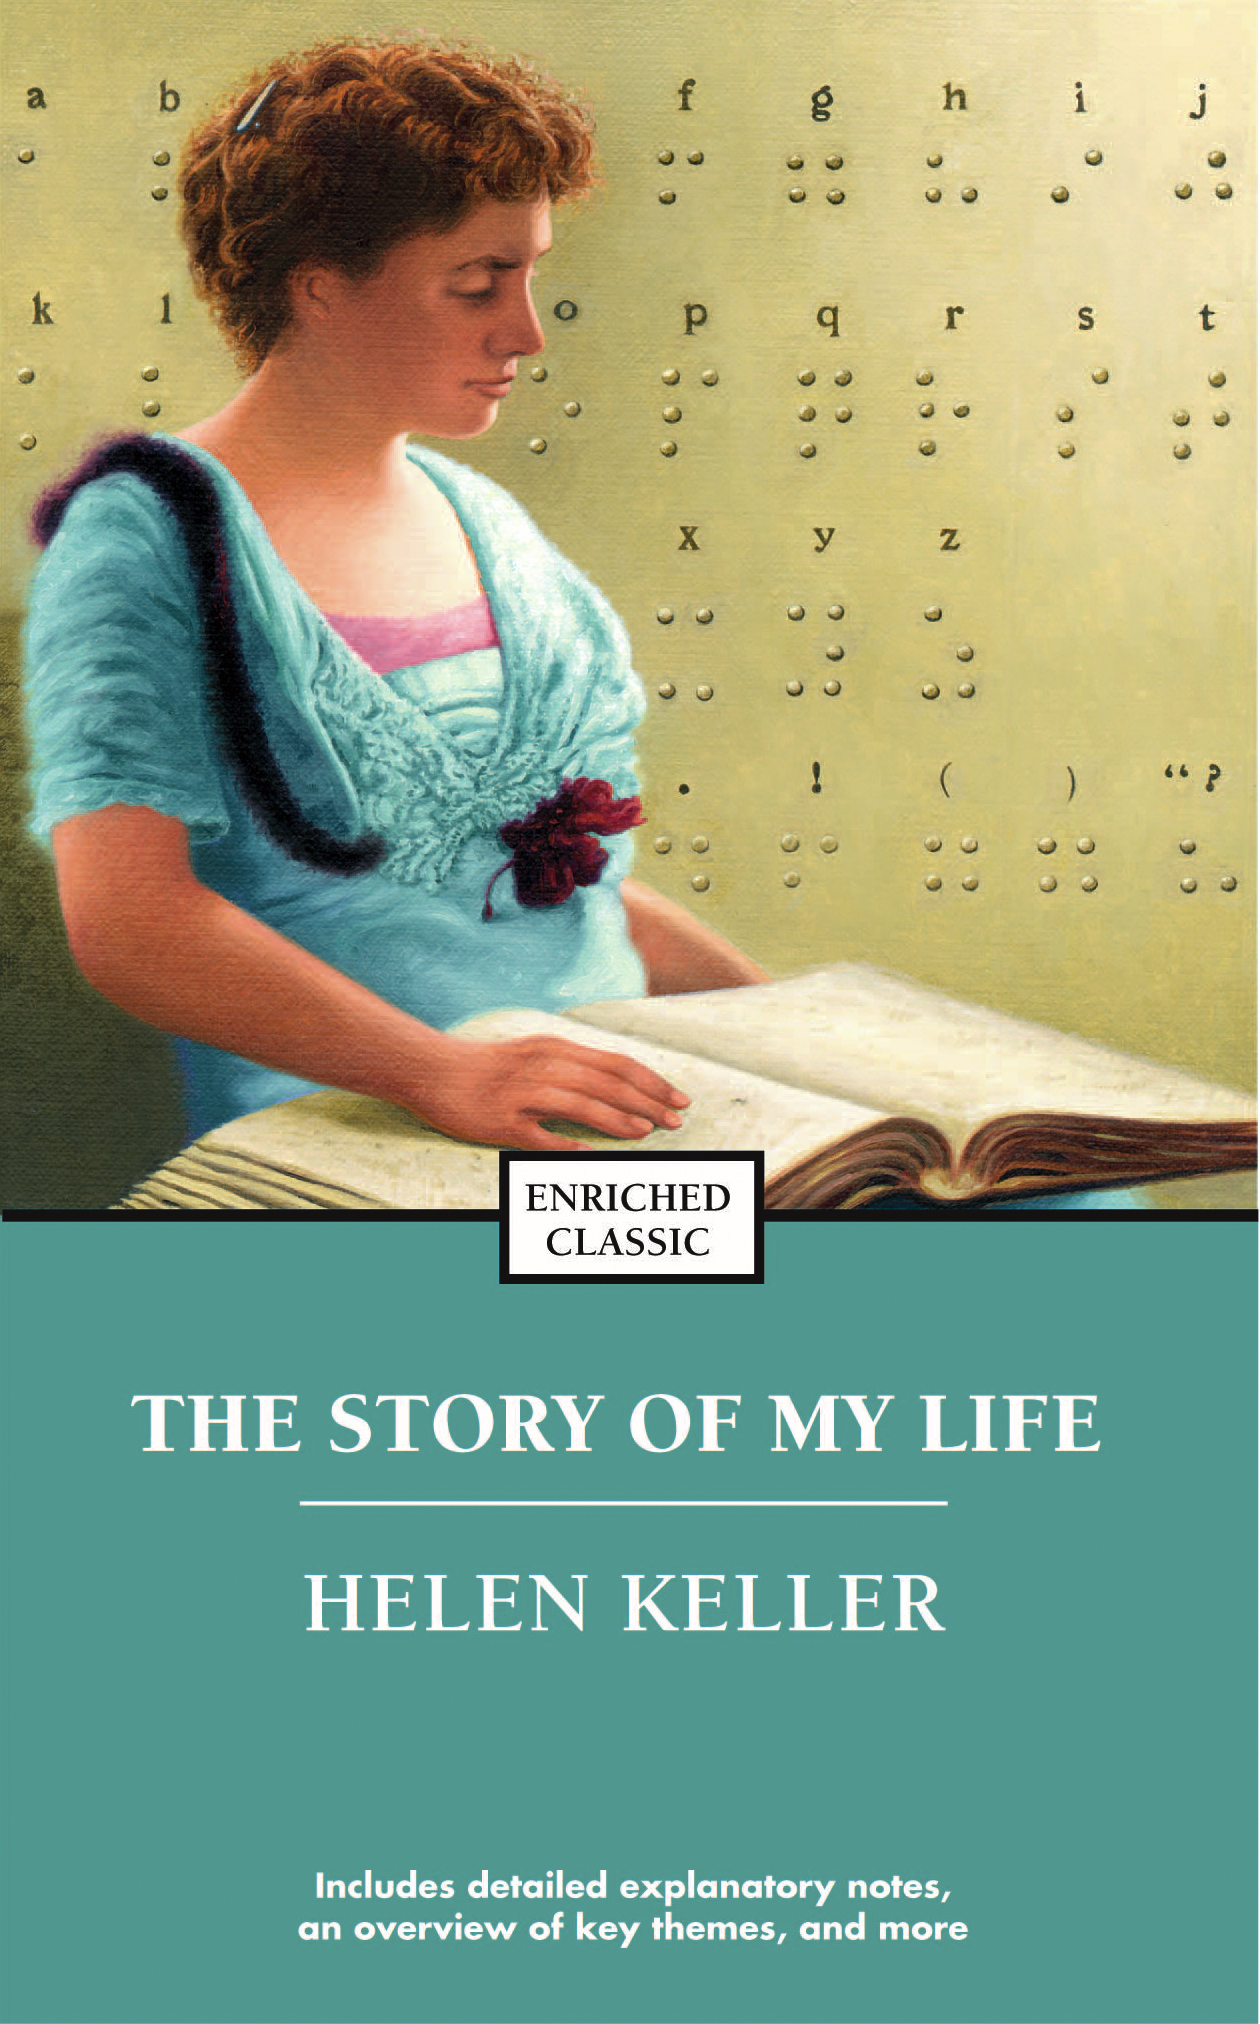 personal narrative the story of my life helen keller I would have not want to have lived the life that helen keller lived yeah she was a successful person but i wouldn't want to not have my sight or hearing she did figure out how to live with this even though it was tough.